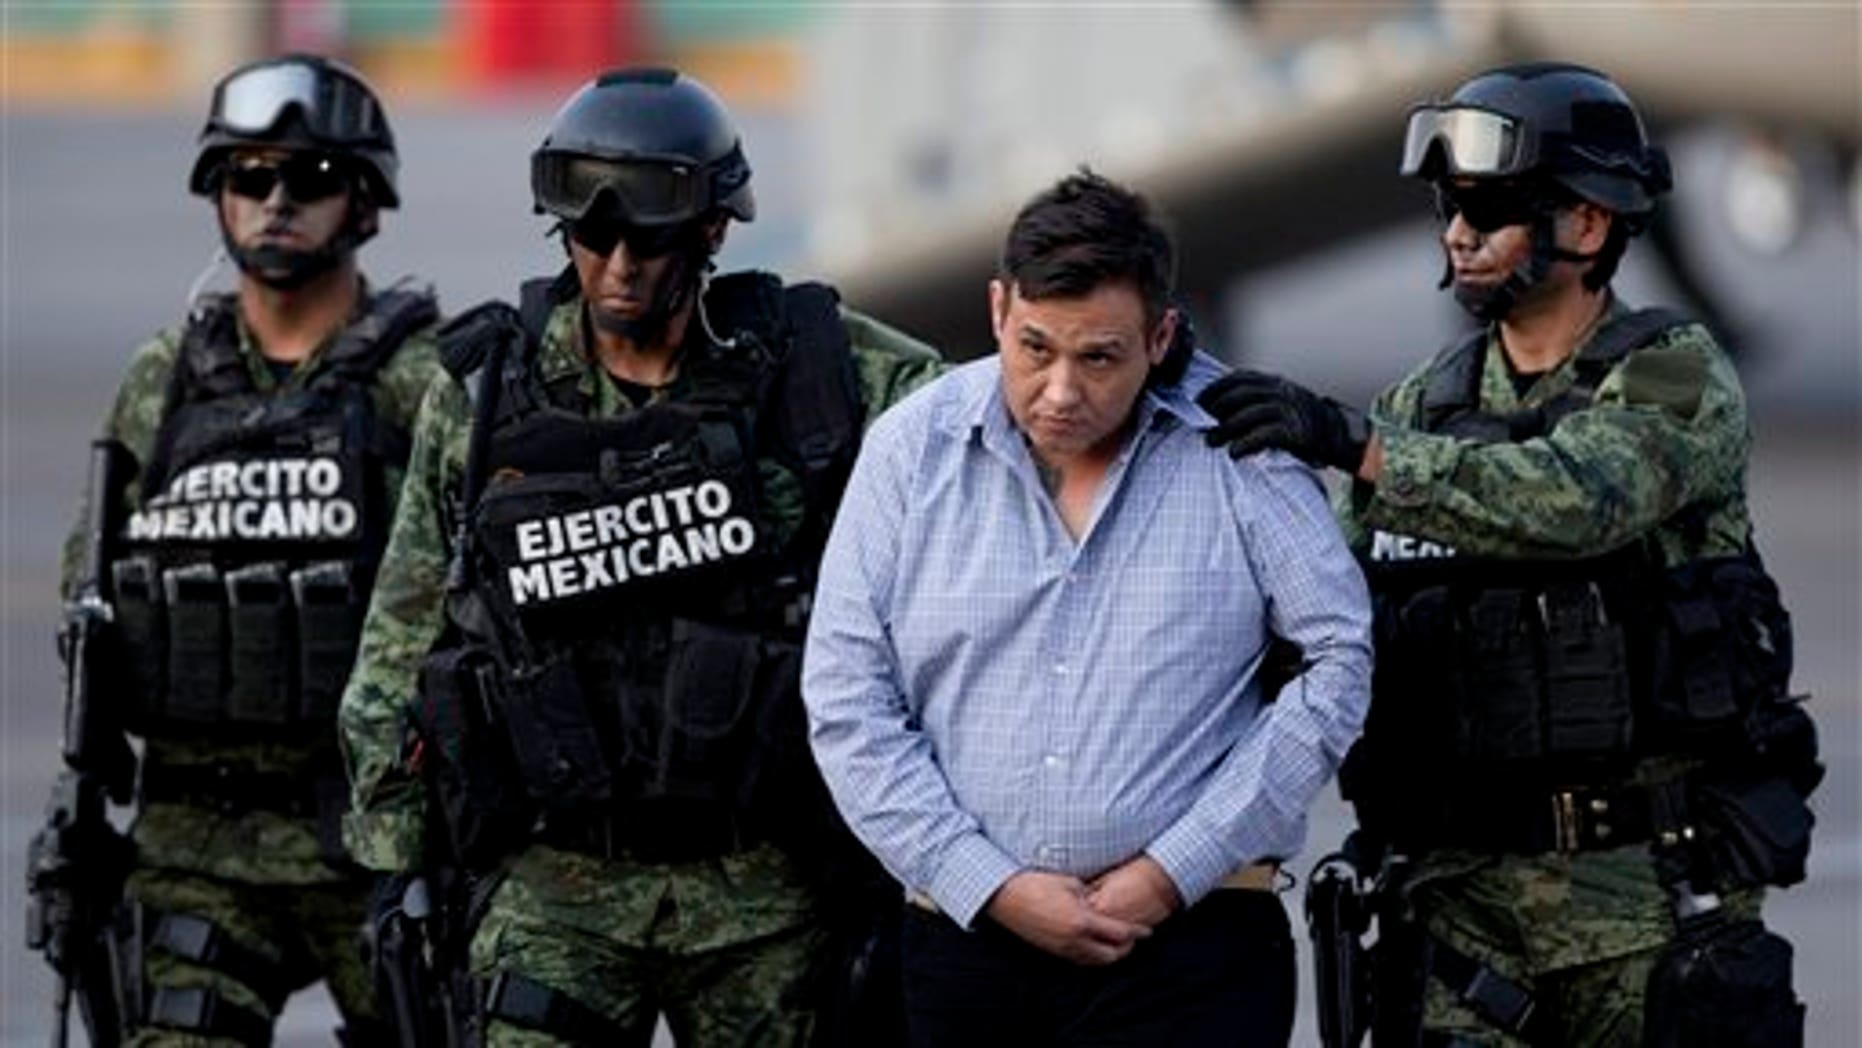 """Soldiers escort a man who authorities identified as Omar Trevino Morales, alias """"Z-42,"""" leader of the Zetas drug cartel, as he is moved from a military plane to a military vehicle at the Attorney General's Office hangar in Mexico City, Wednesday, March 4, 2015. An official who was not authorized to be quoted by name because of government policy, said Morales was arrested on Wednesday in a pre-dawn raid in San Pedro Garza Garcia, a wealthy suburb of the northern city of Monterrey. (AP Photo/Eduardo Verdugo)"""